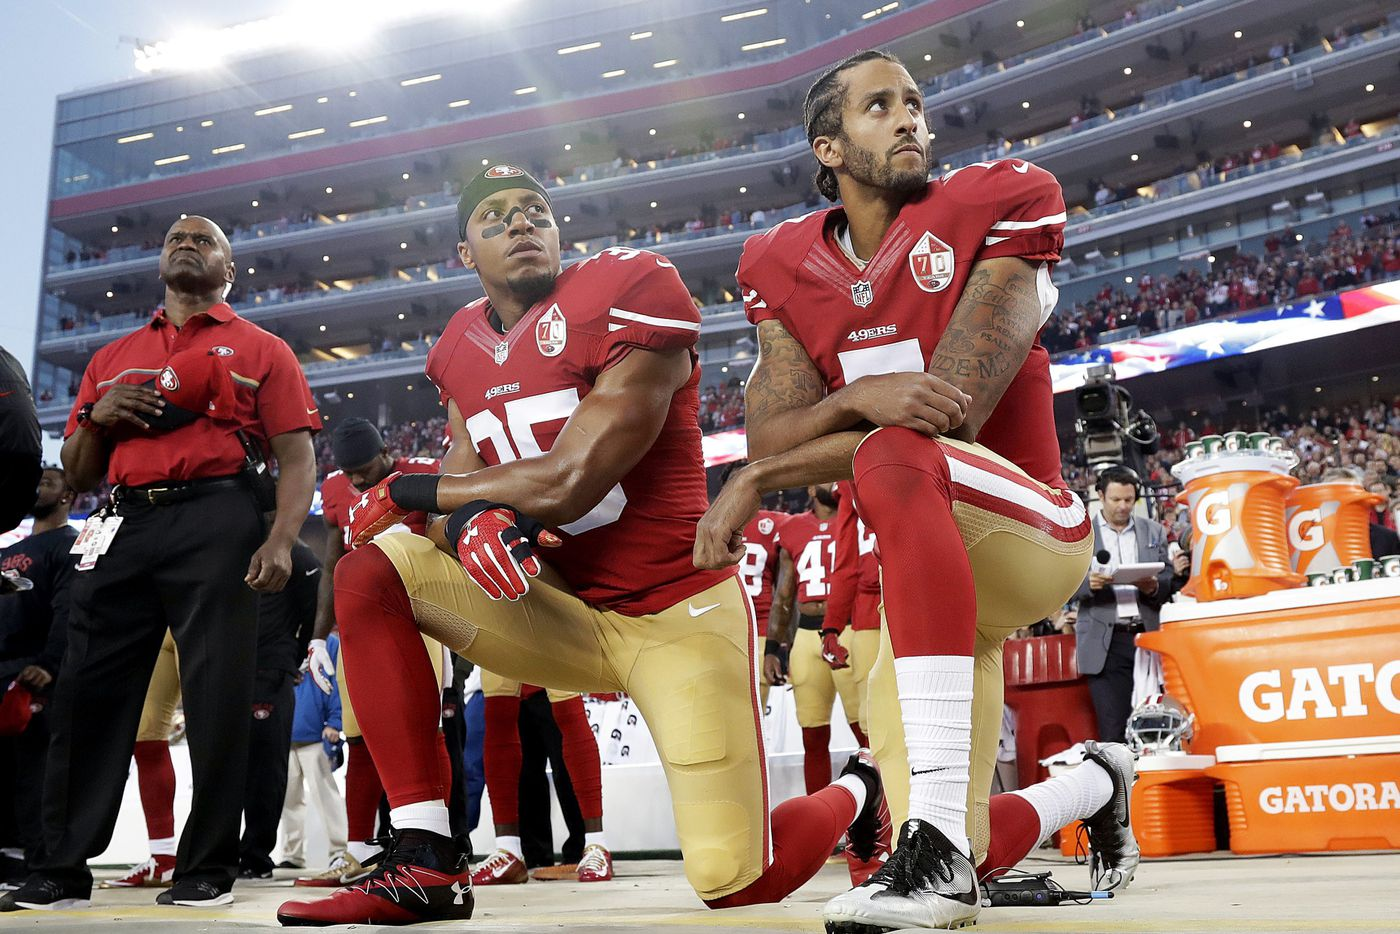 Radical plays: Activist athletes are nothing new | Opinion